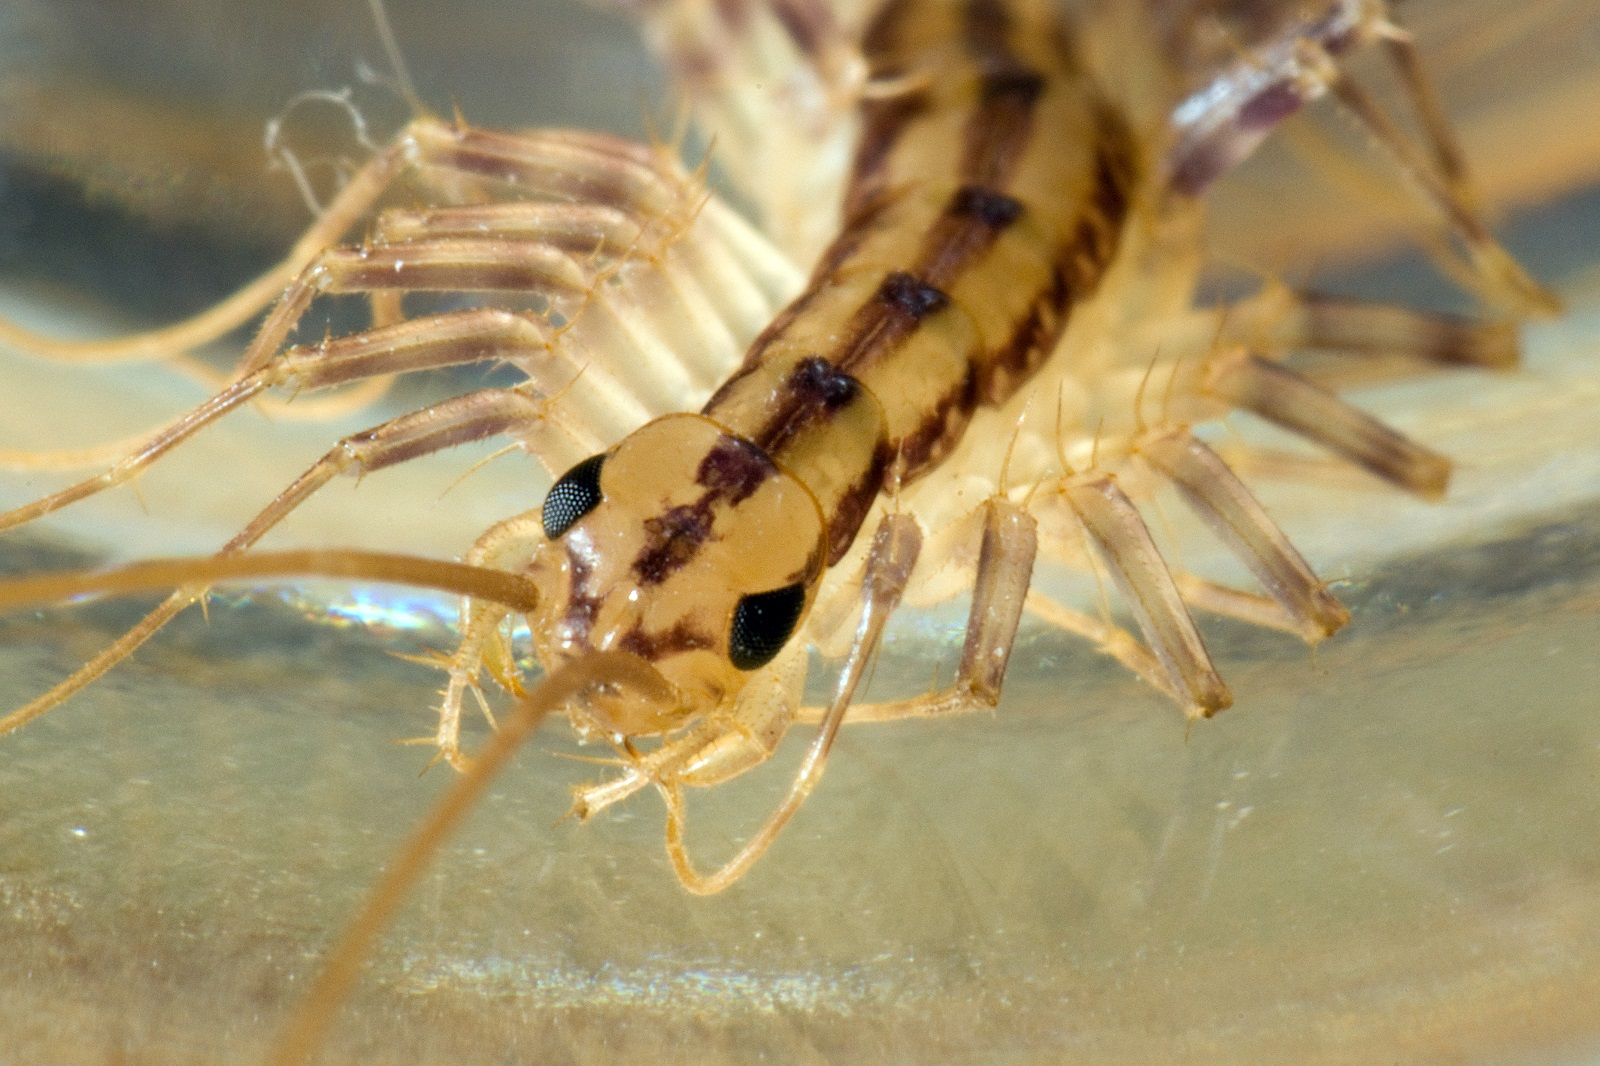 House centipedes images